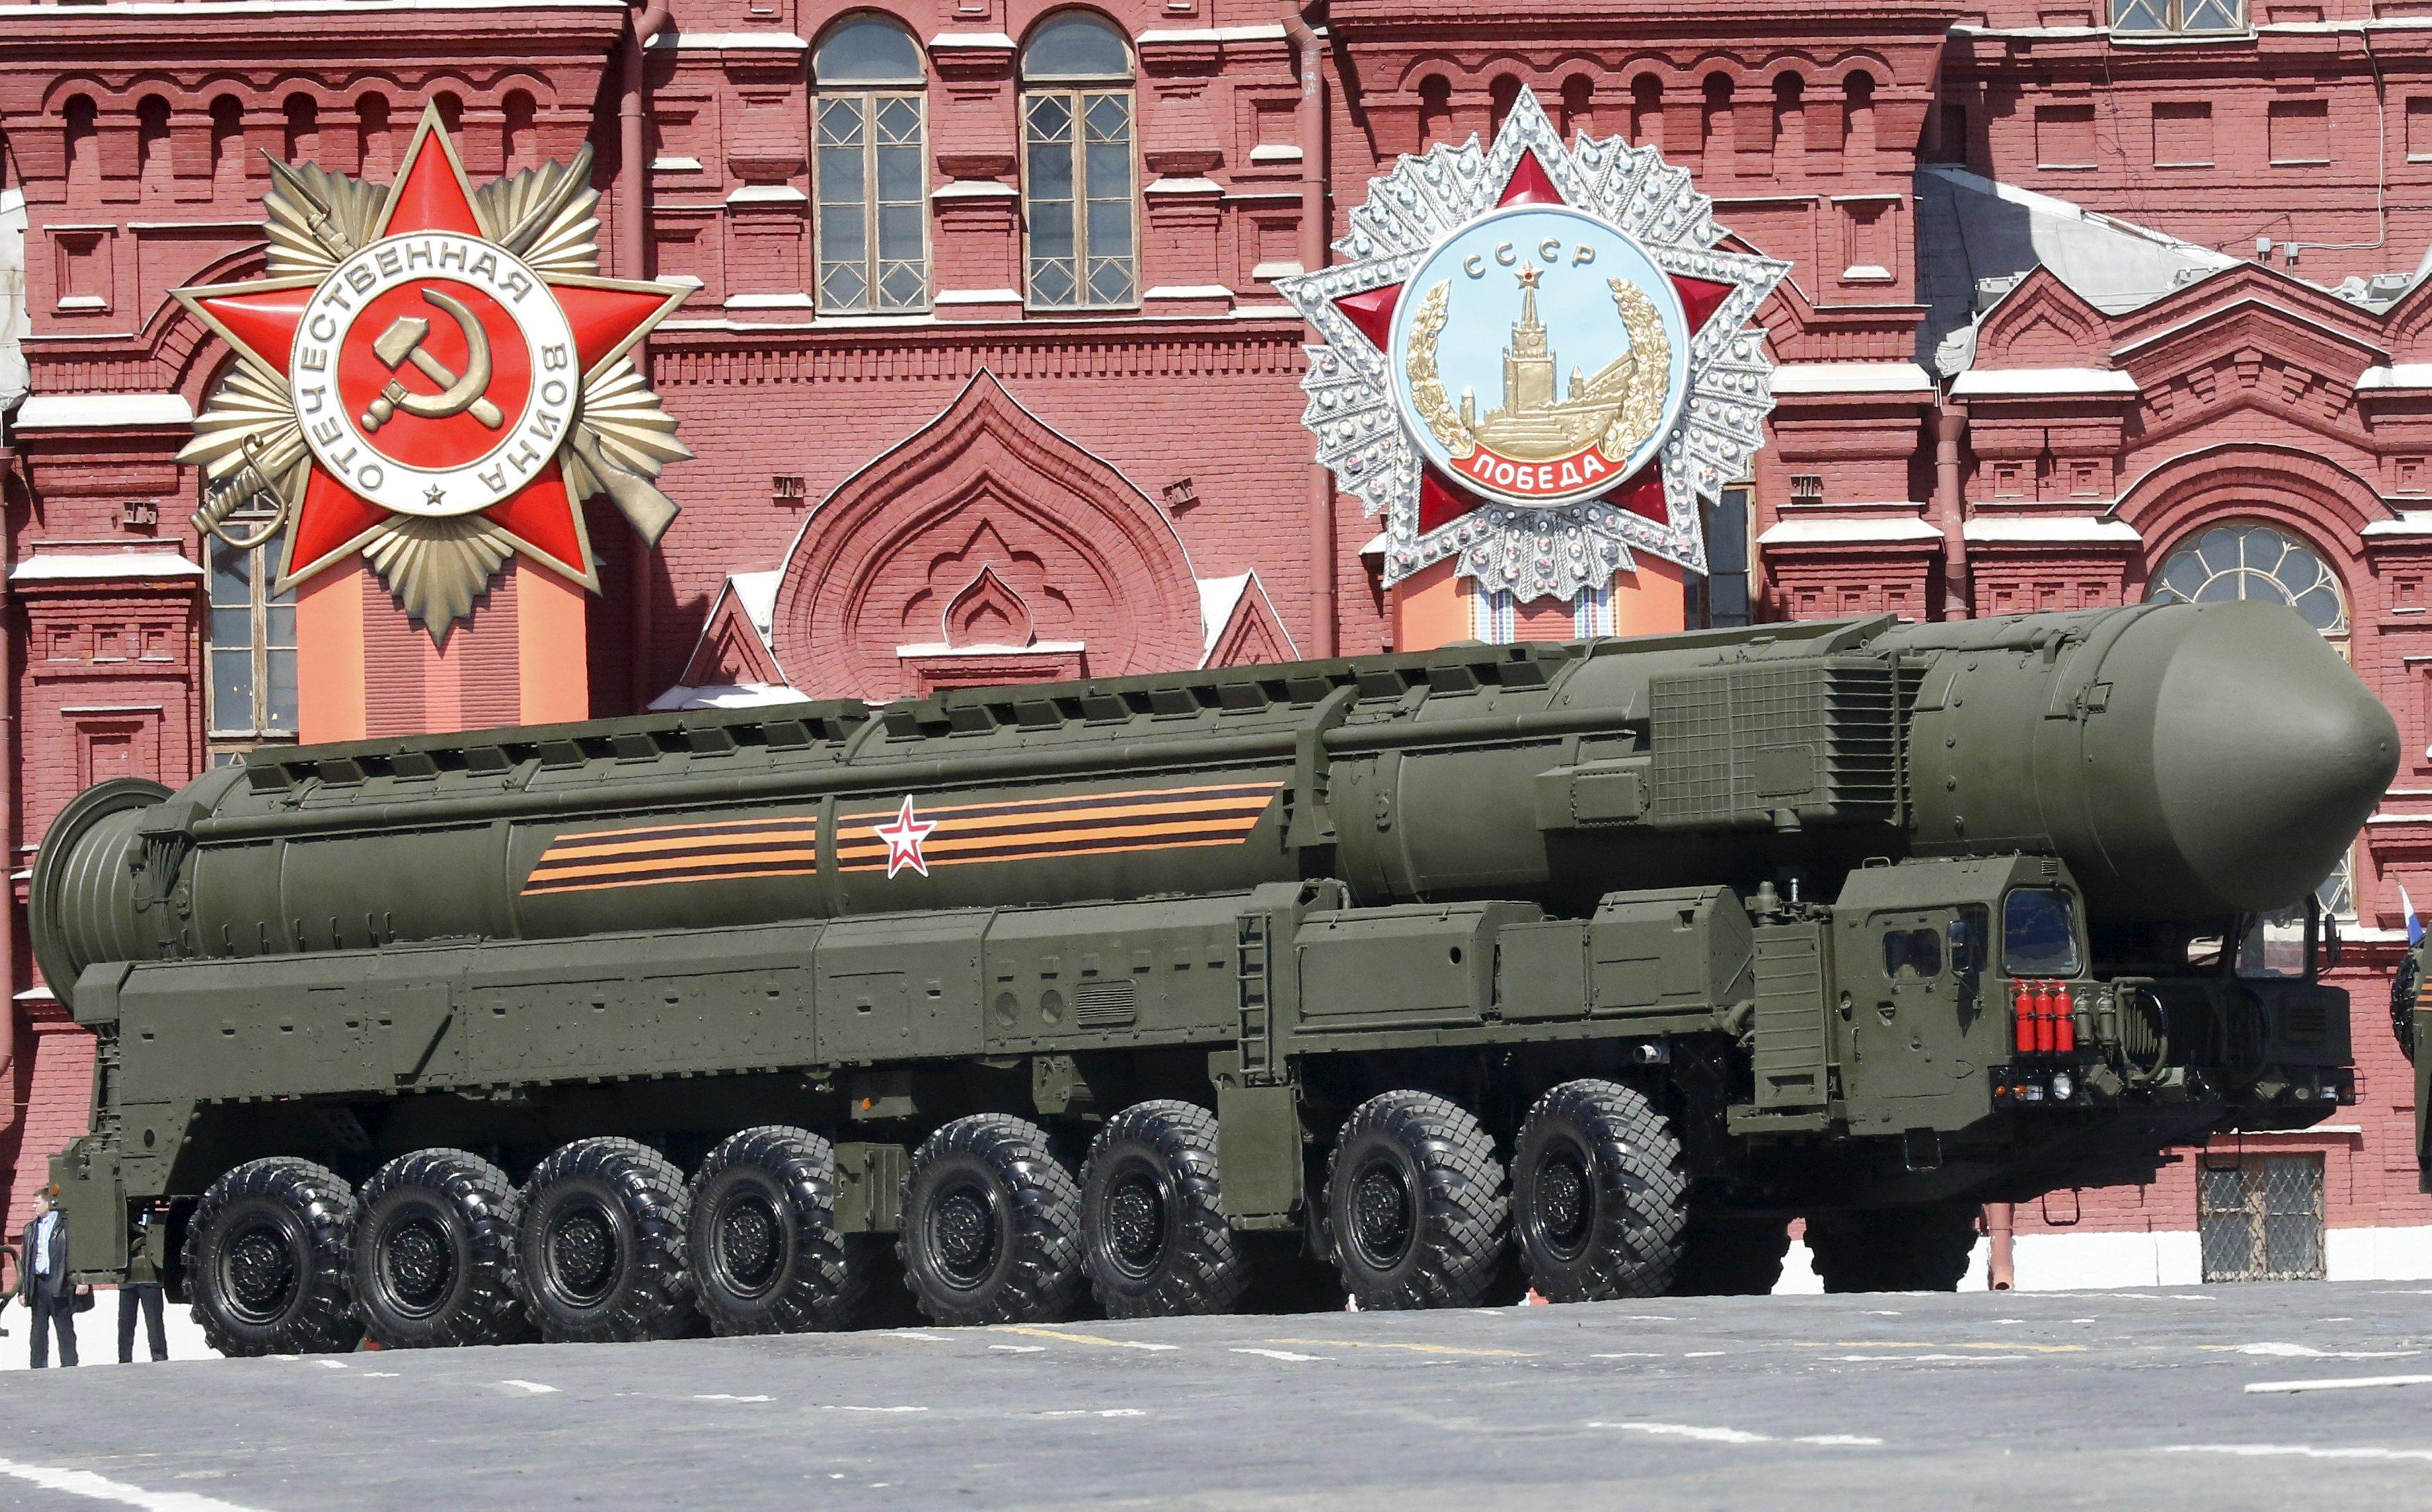 One of the most recognizable elements to Russia's Victory Day parade.